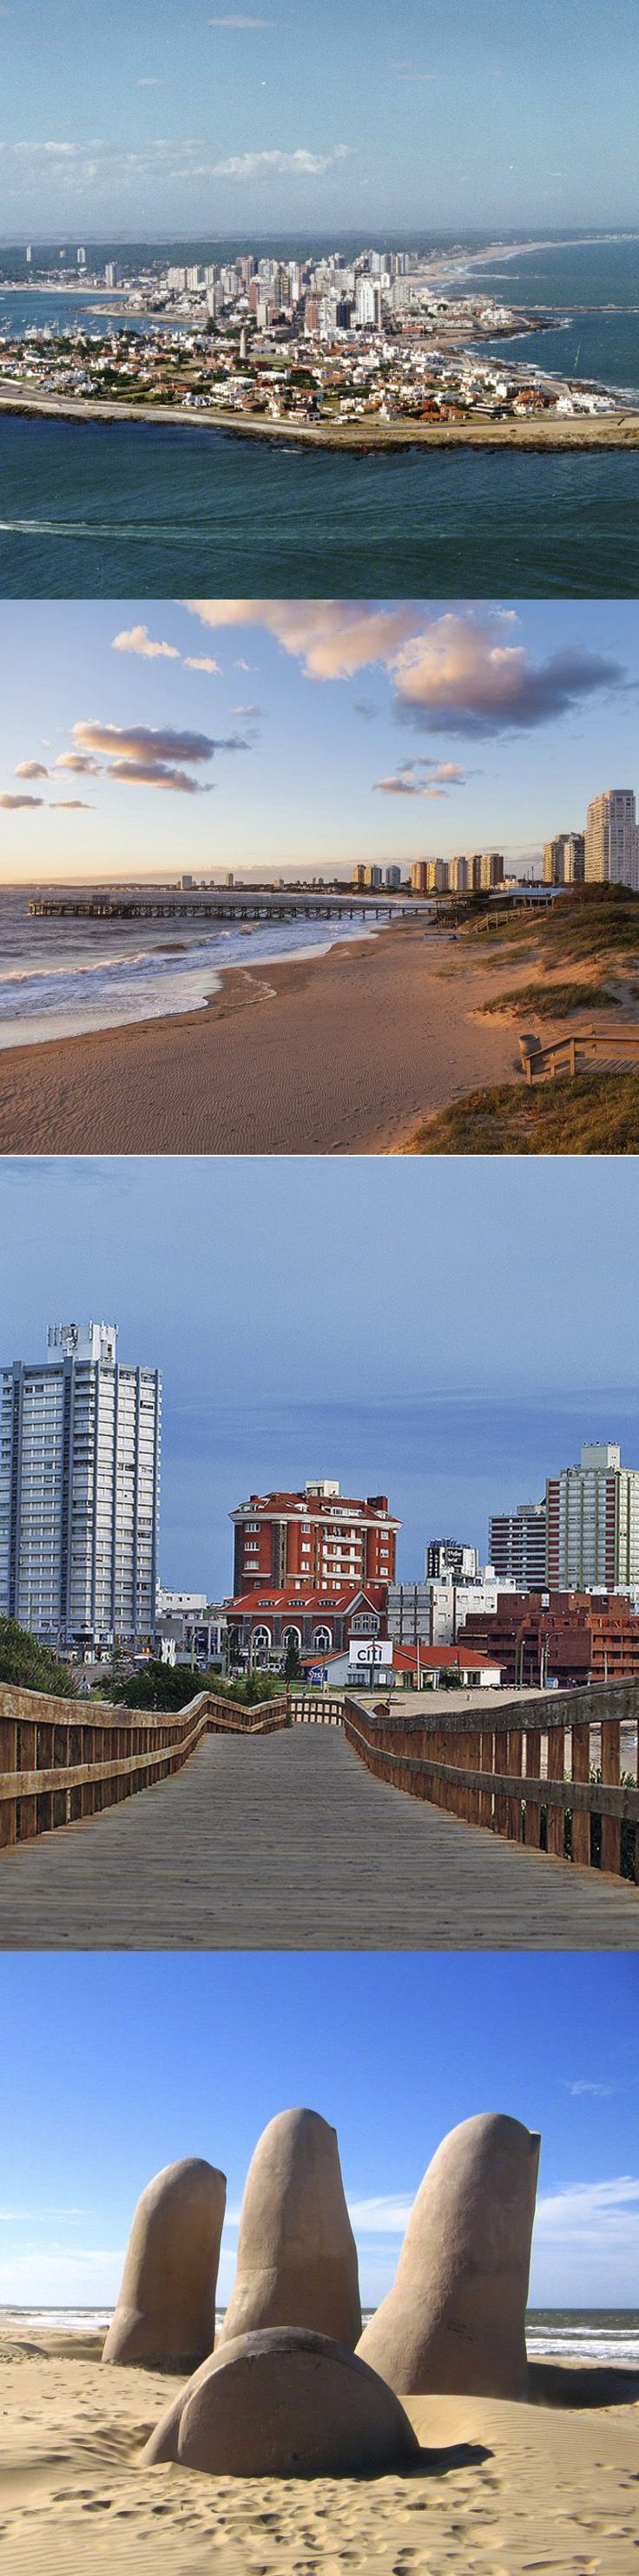 how to get from montevideo to punta del este